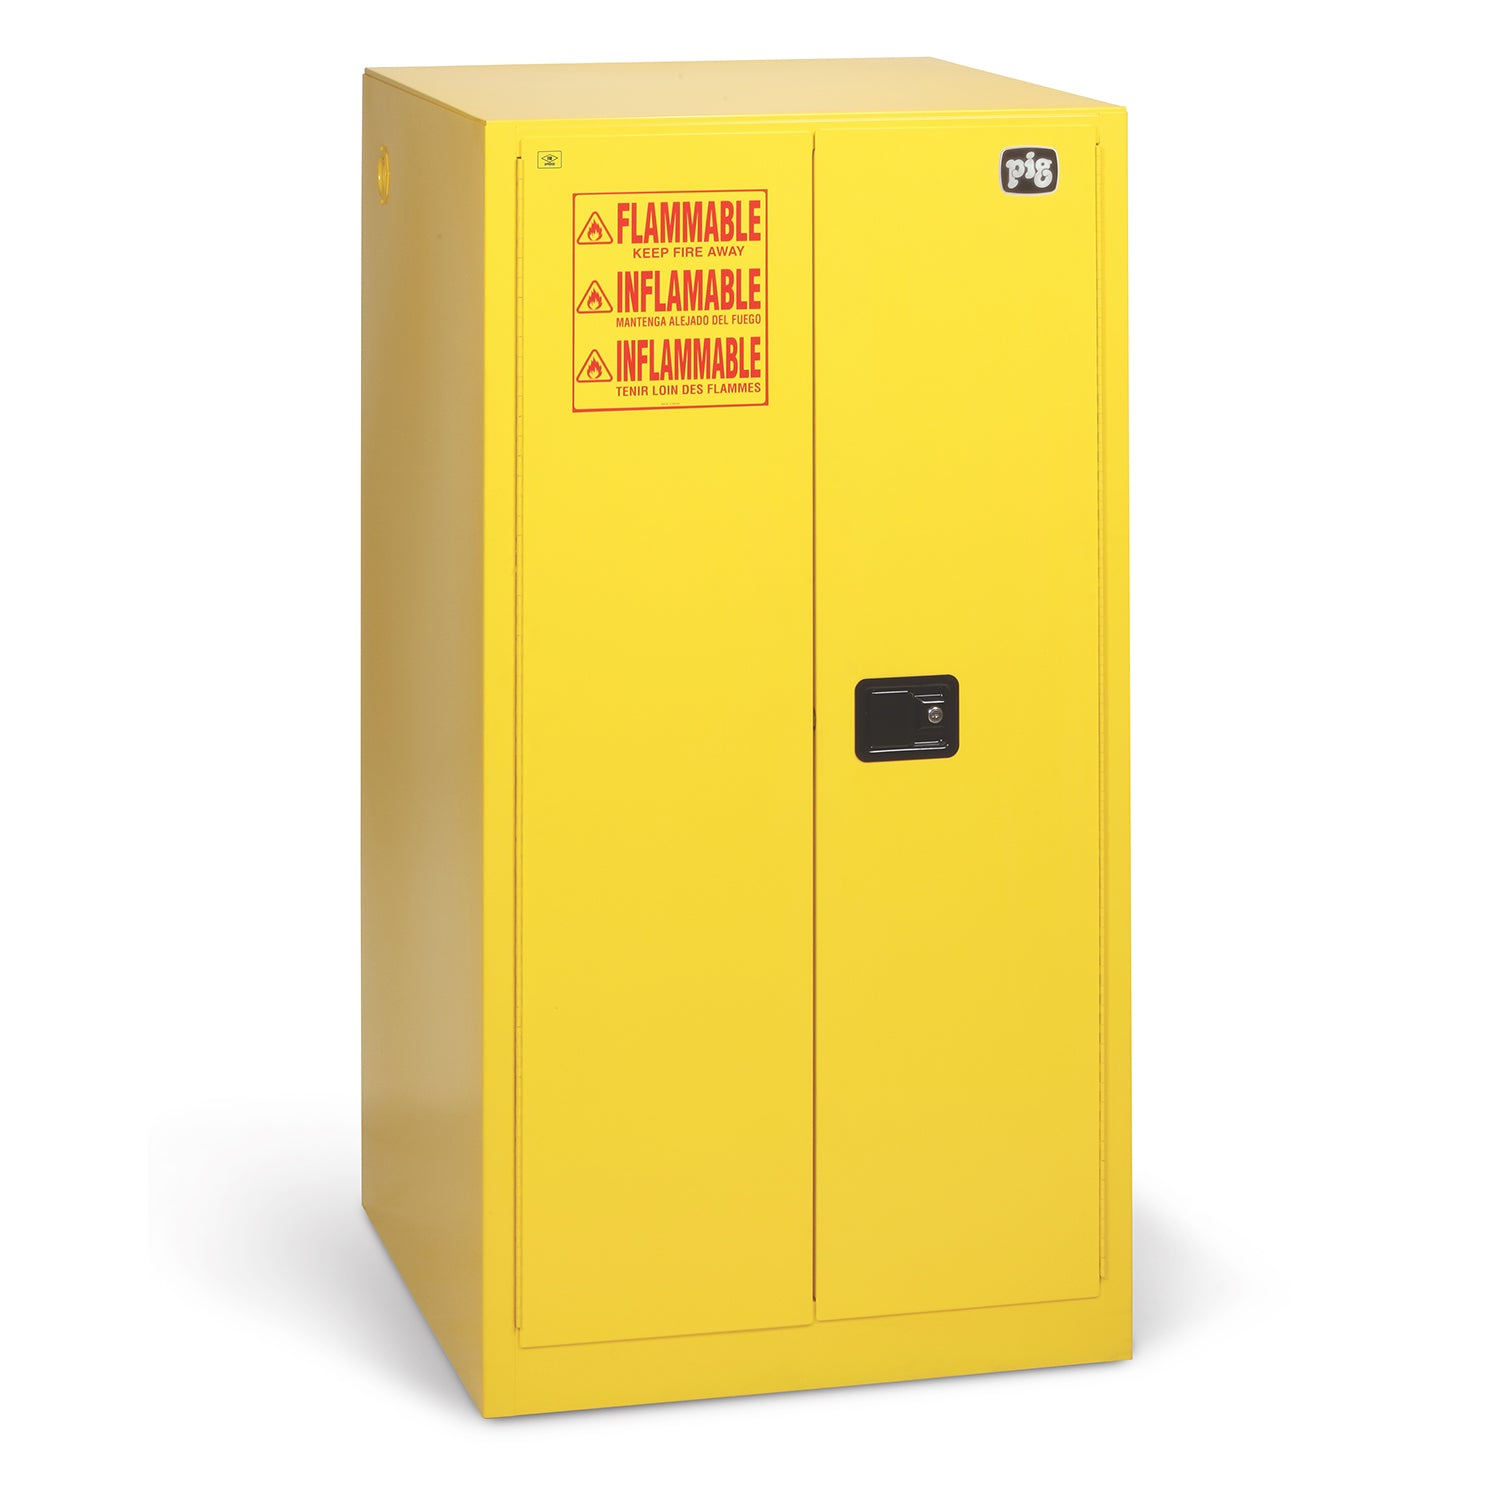 Pig Flammable Liquid Storage Cabinet Cabk721 New Pig India